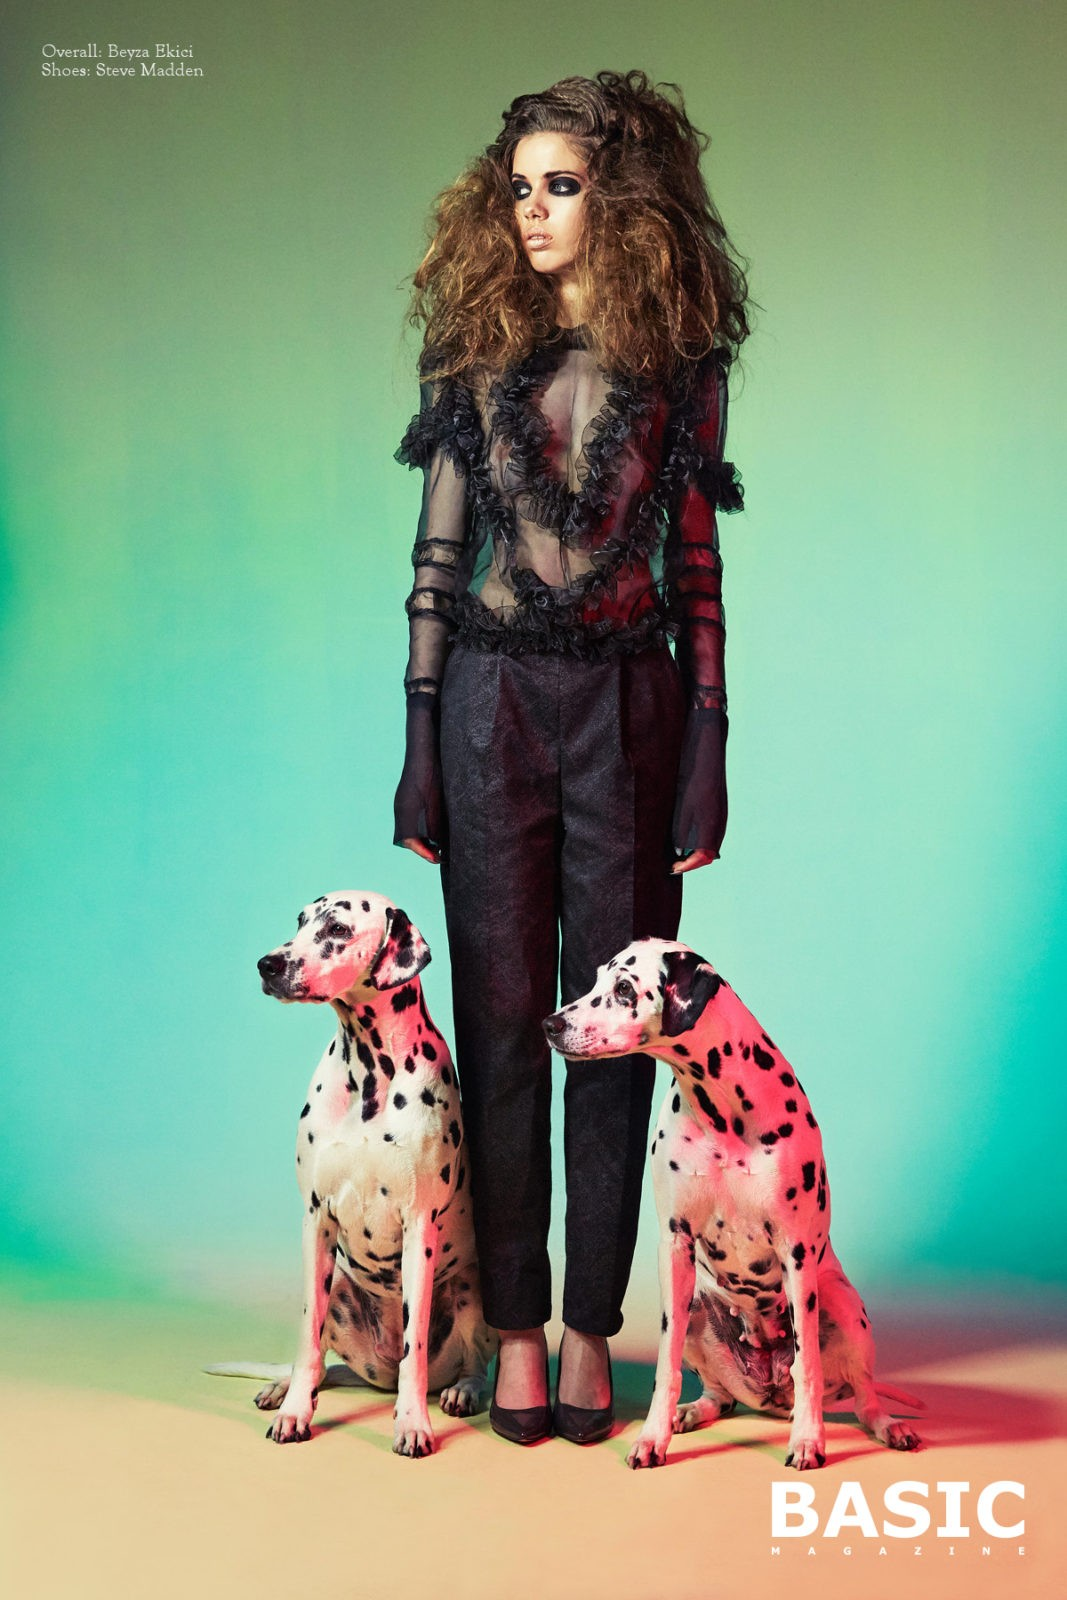 tamara hansen basic magazine wild things fashion (5)